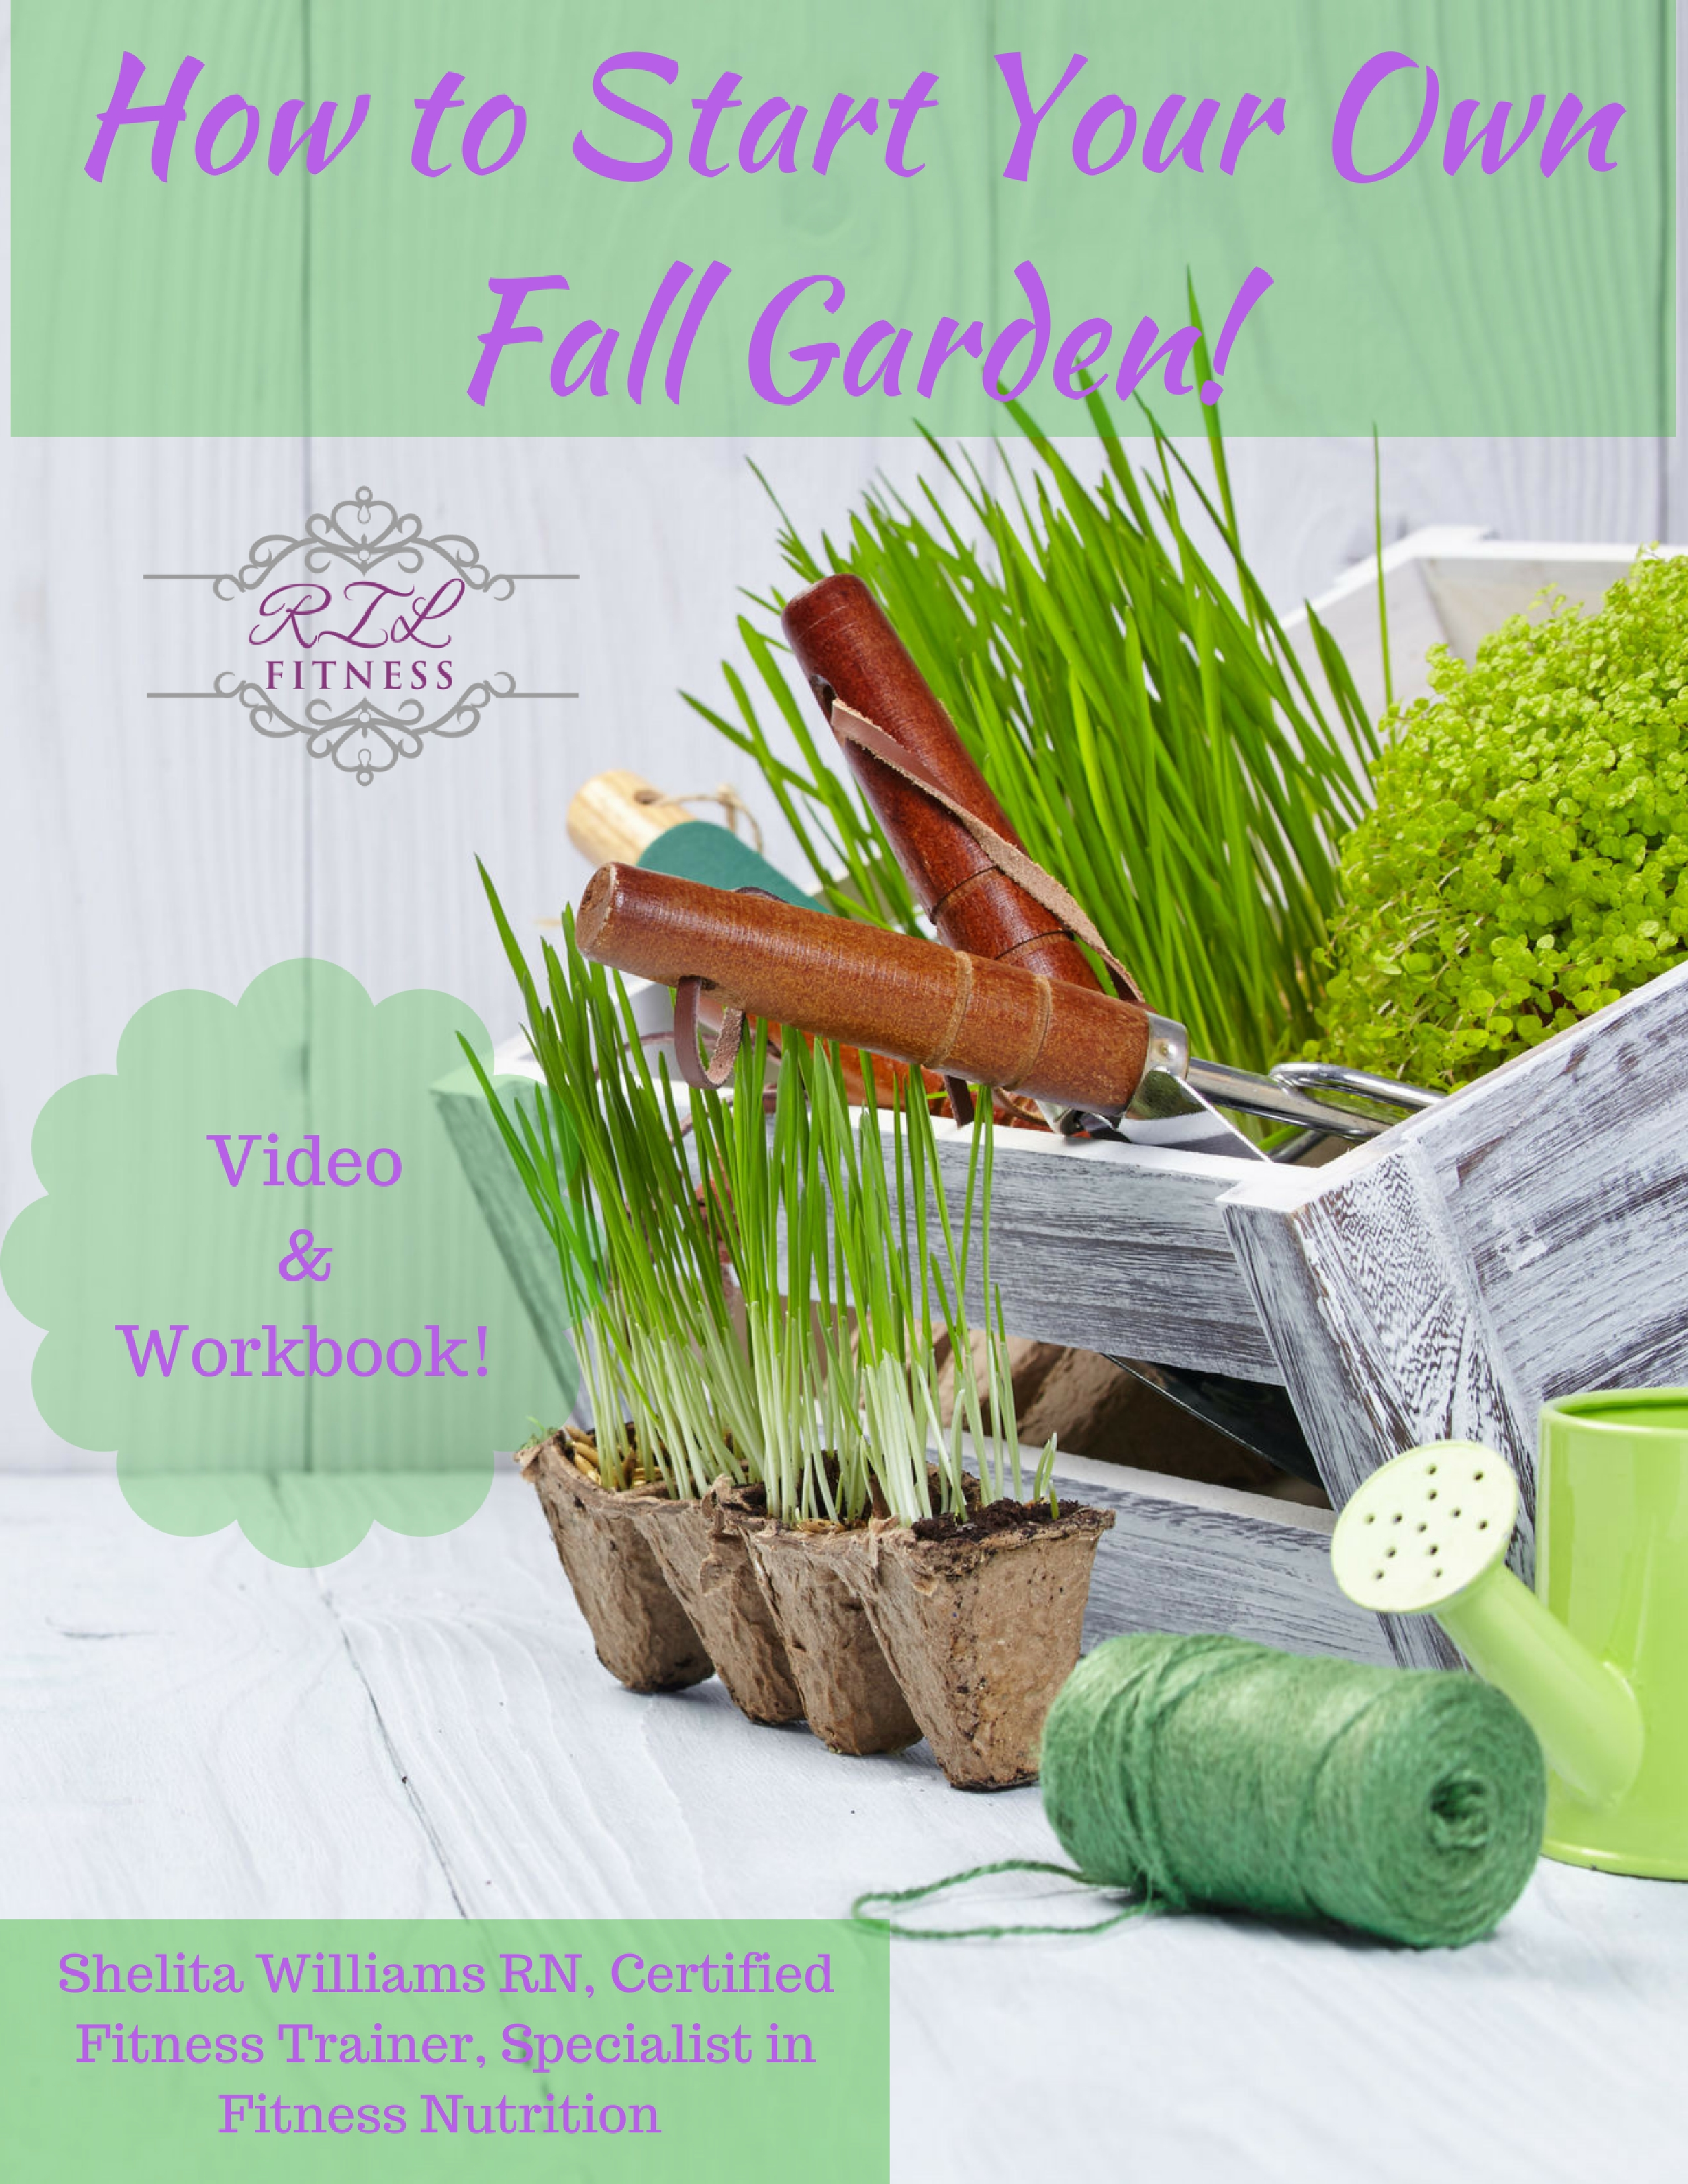 How to Start a Fall Garden Video w Workbook (DIGITAL PRODUCT)